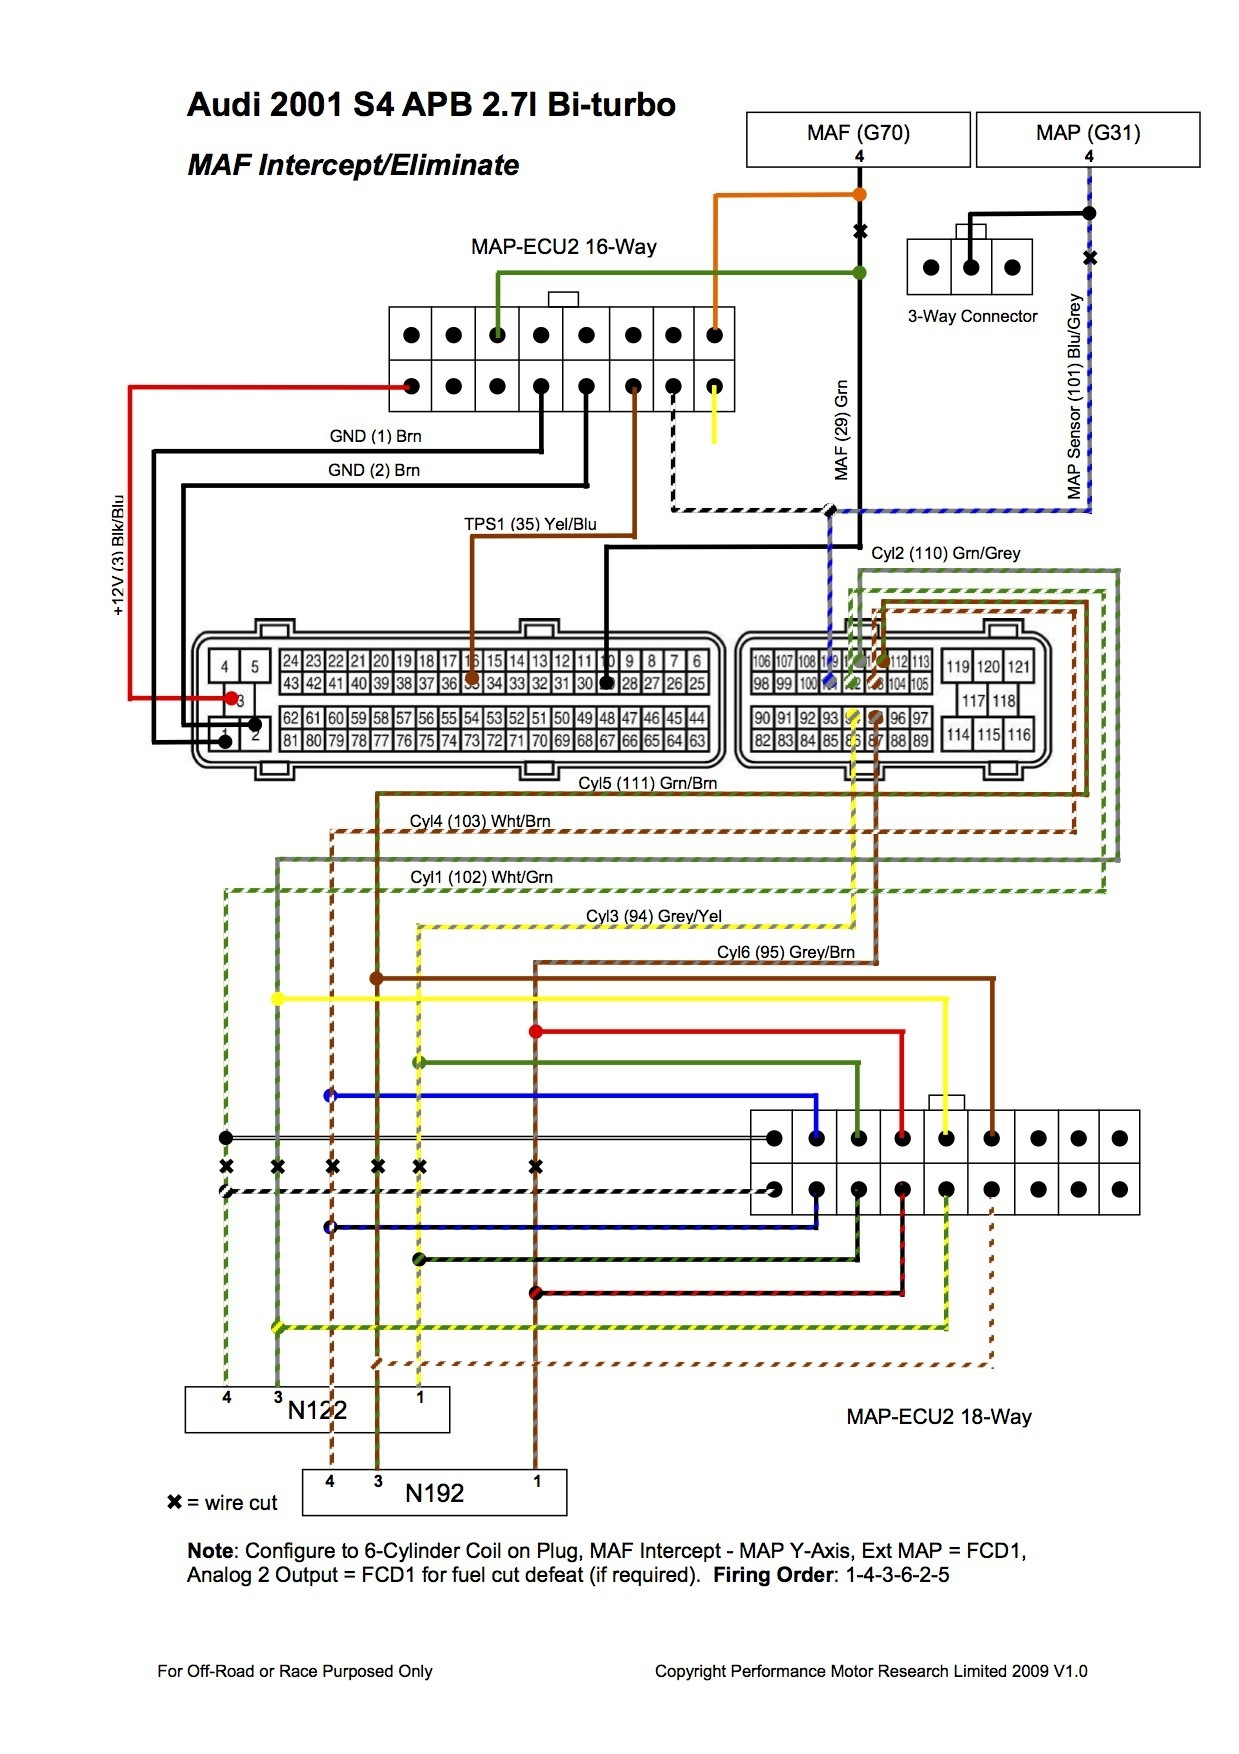 2002 dodge ram 1500 stereo wiring diagram Collection-1999 Audi A4 Radio Wiring Diagram Valid 1995 Dodge Ram 1500 Transmission Wiring Diagram Best 2002 16-s